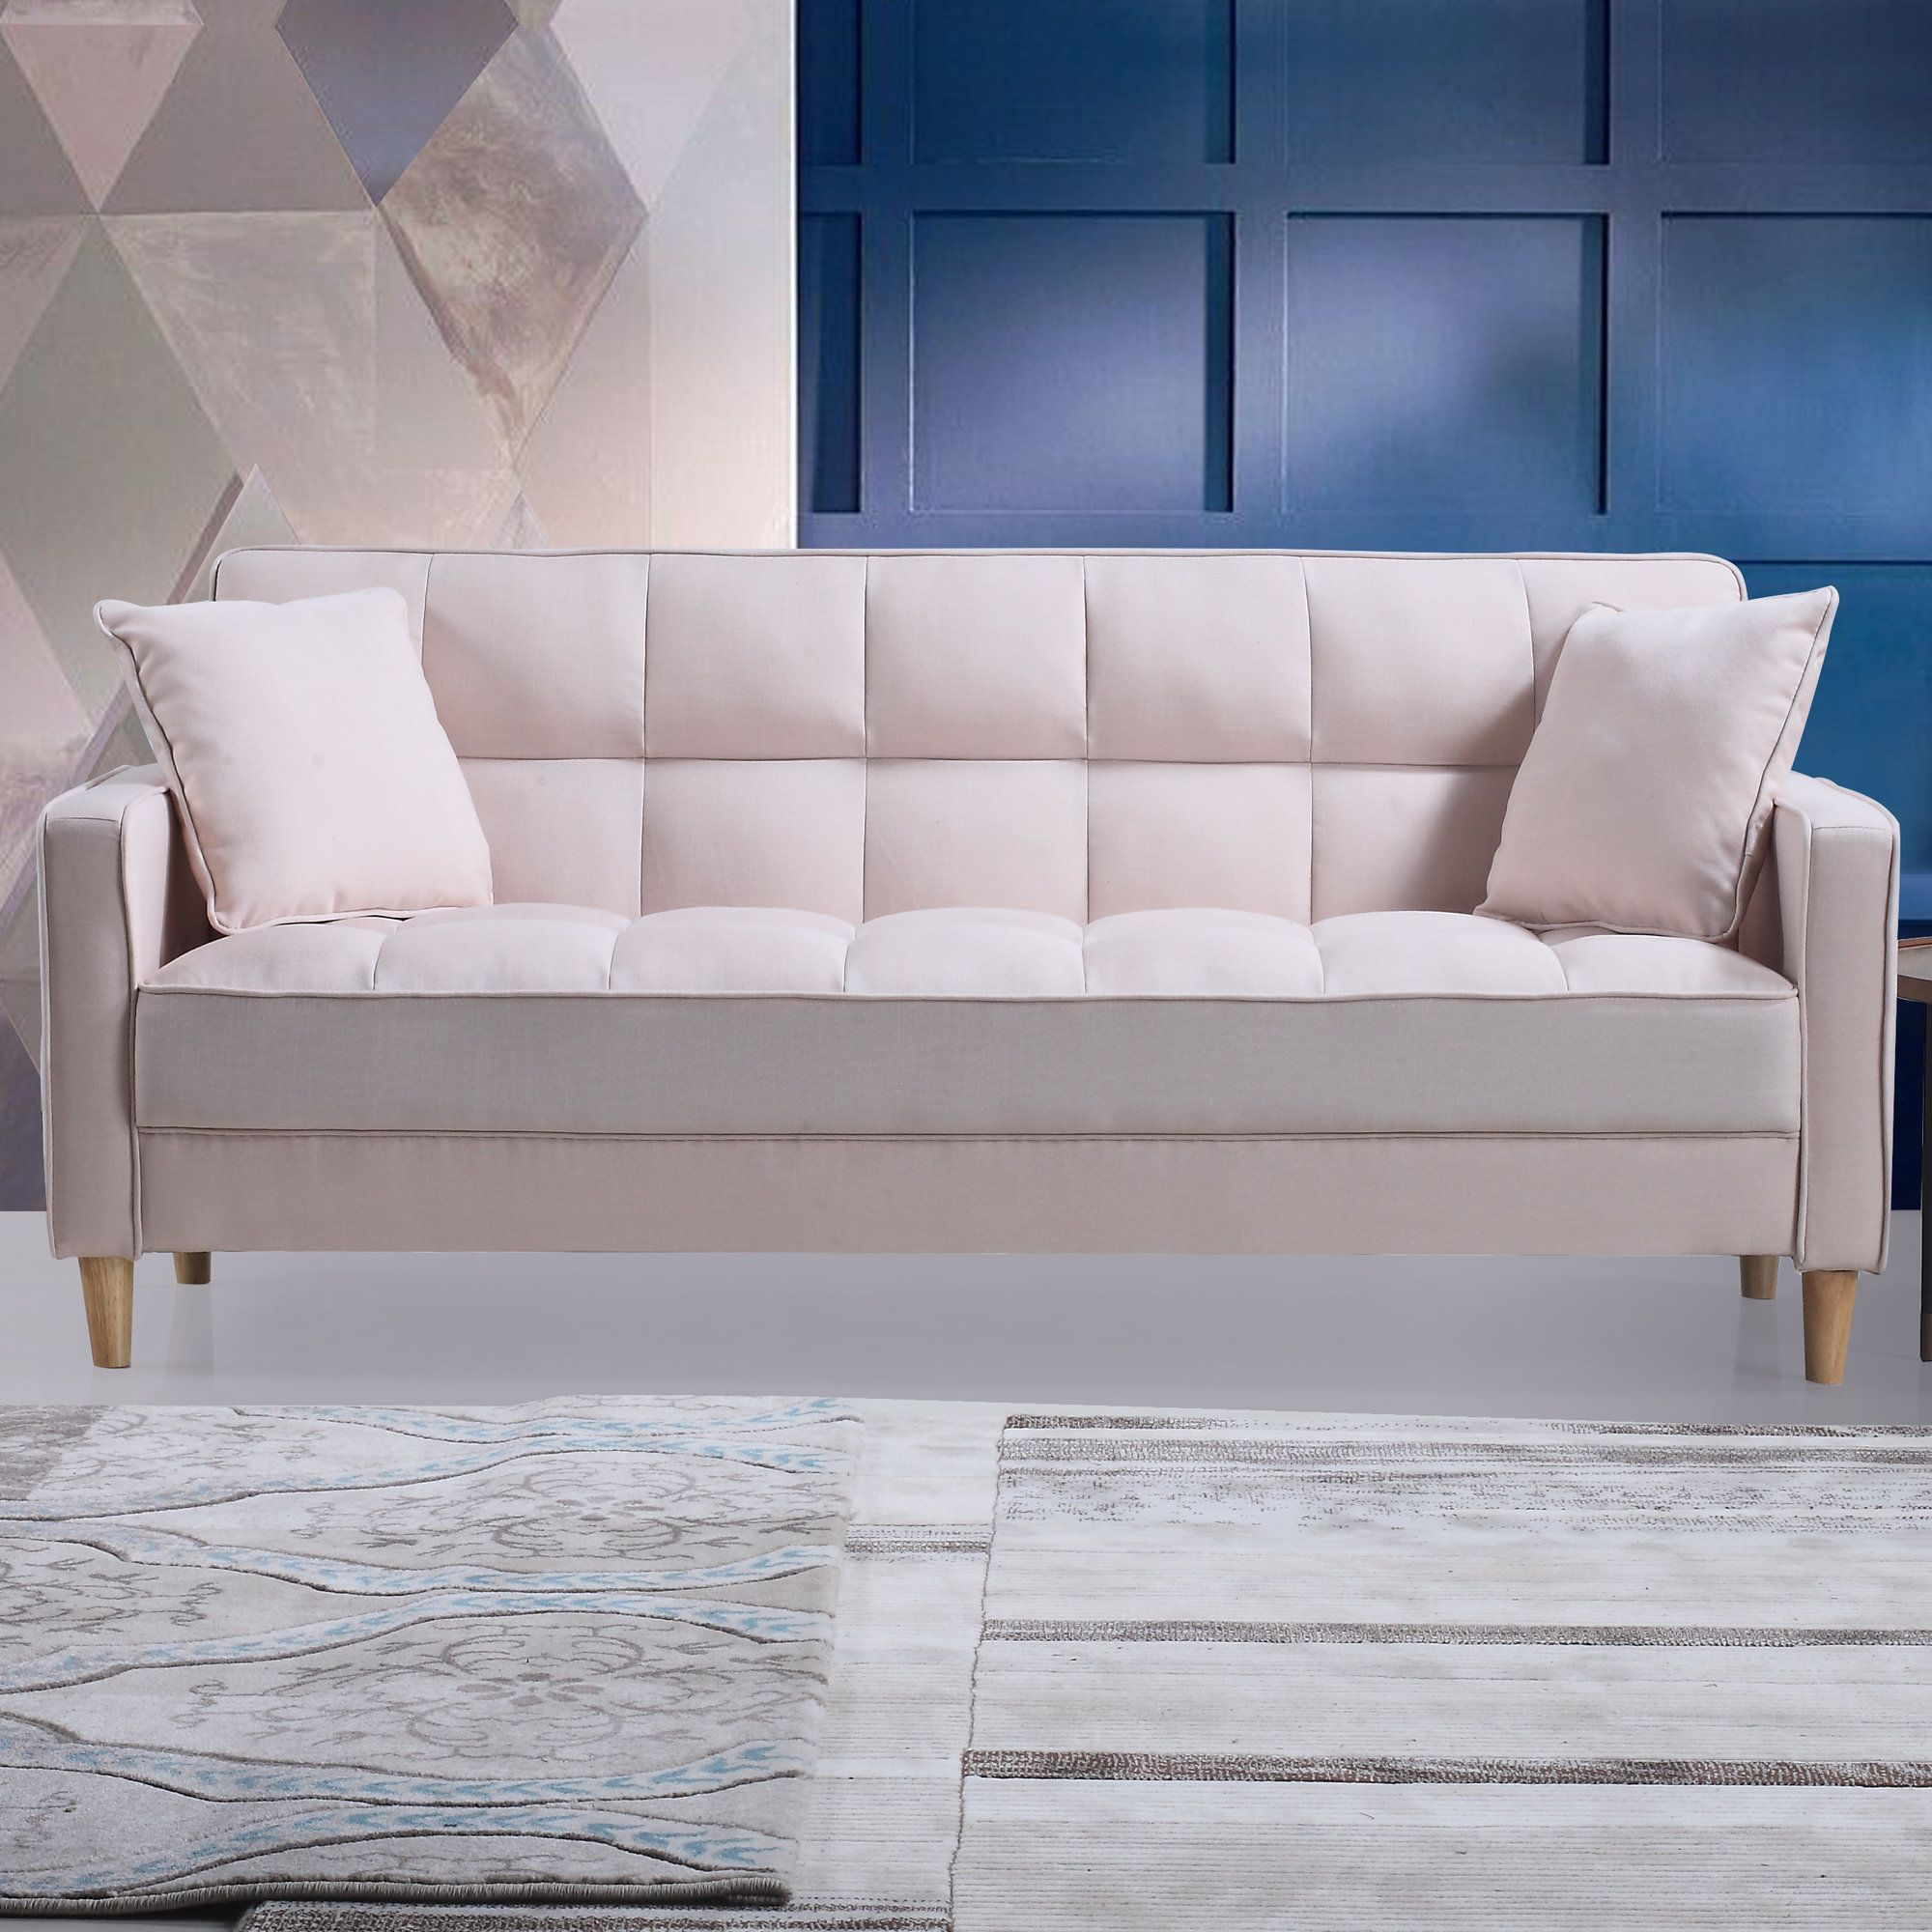 Best Helotes Loveseat Sofas For Small Spaces Living Room 640 x 480